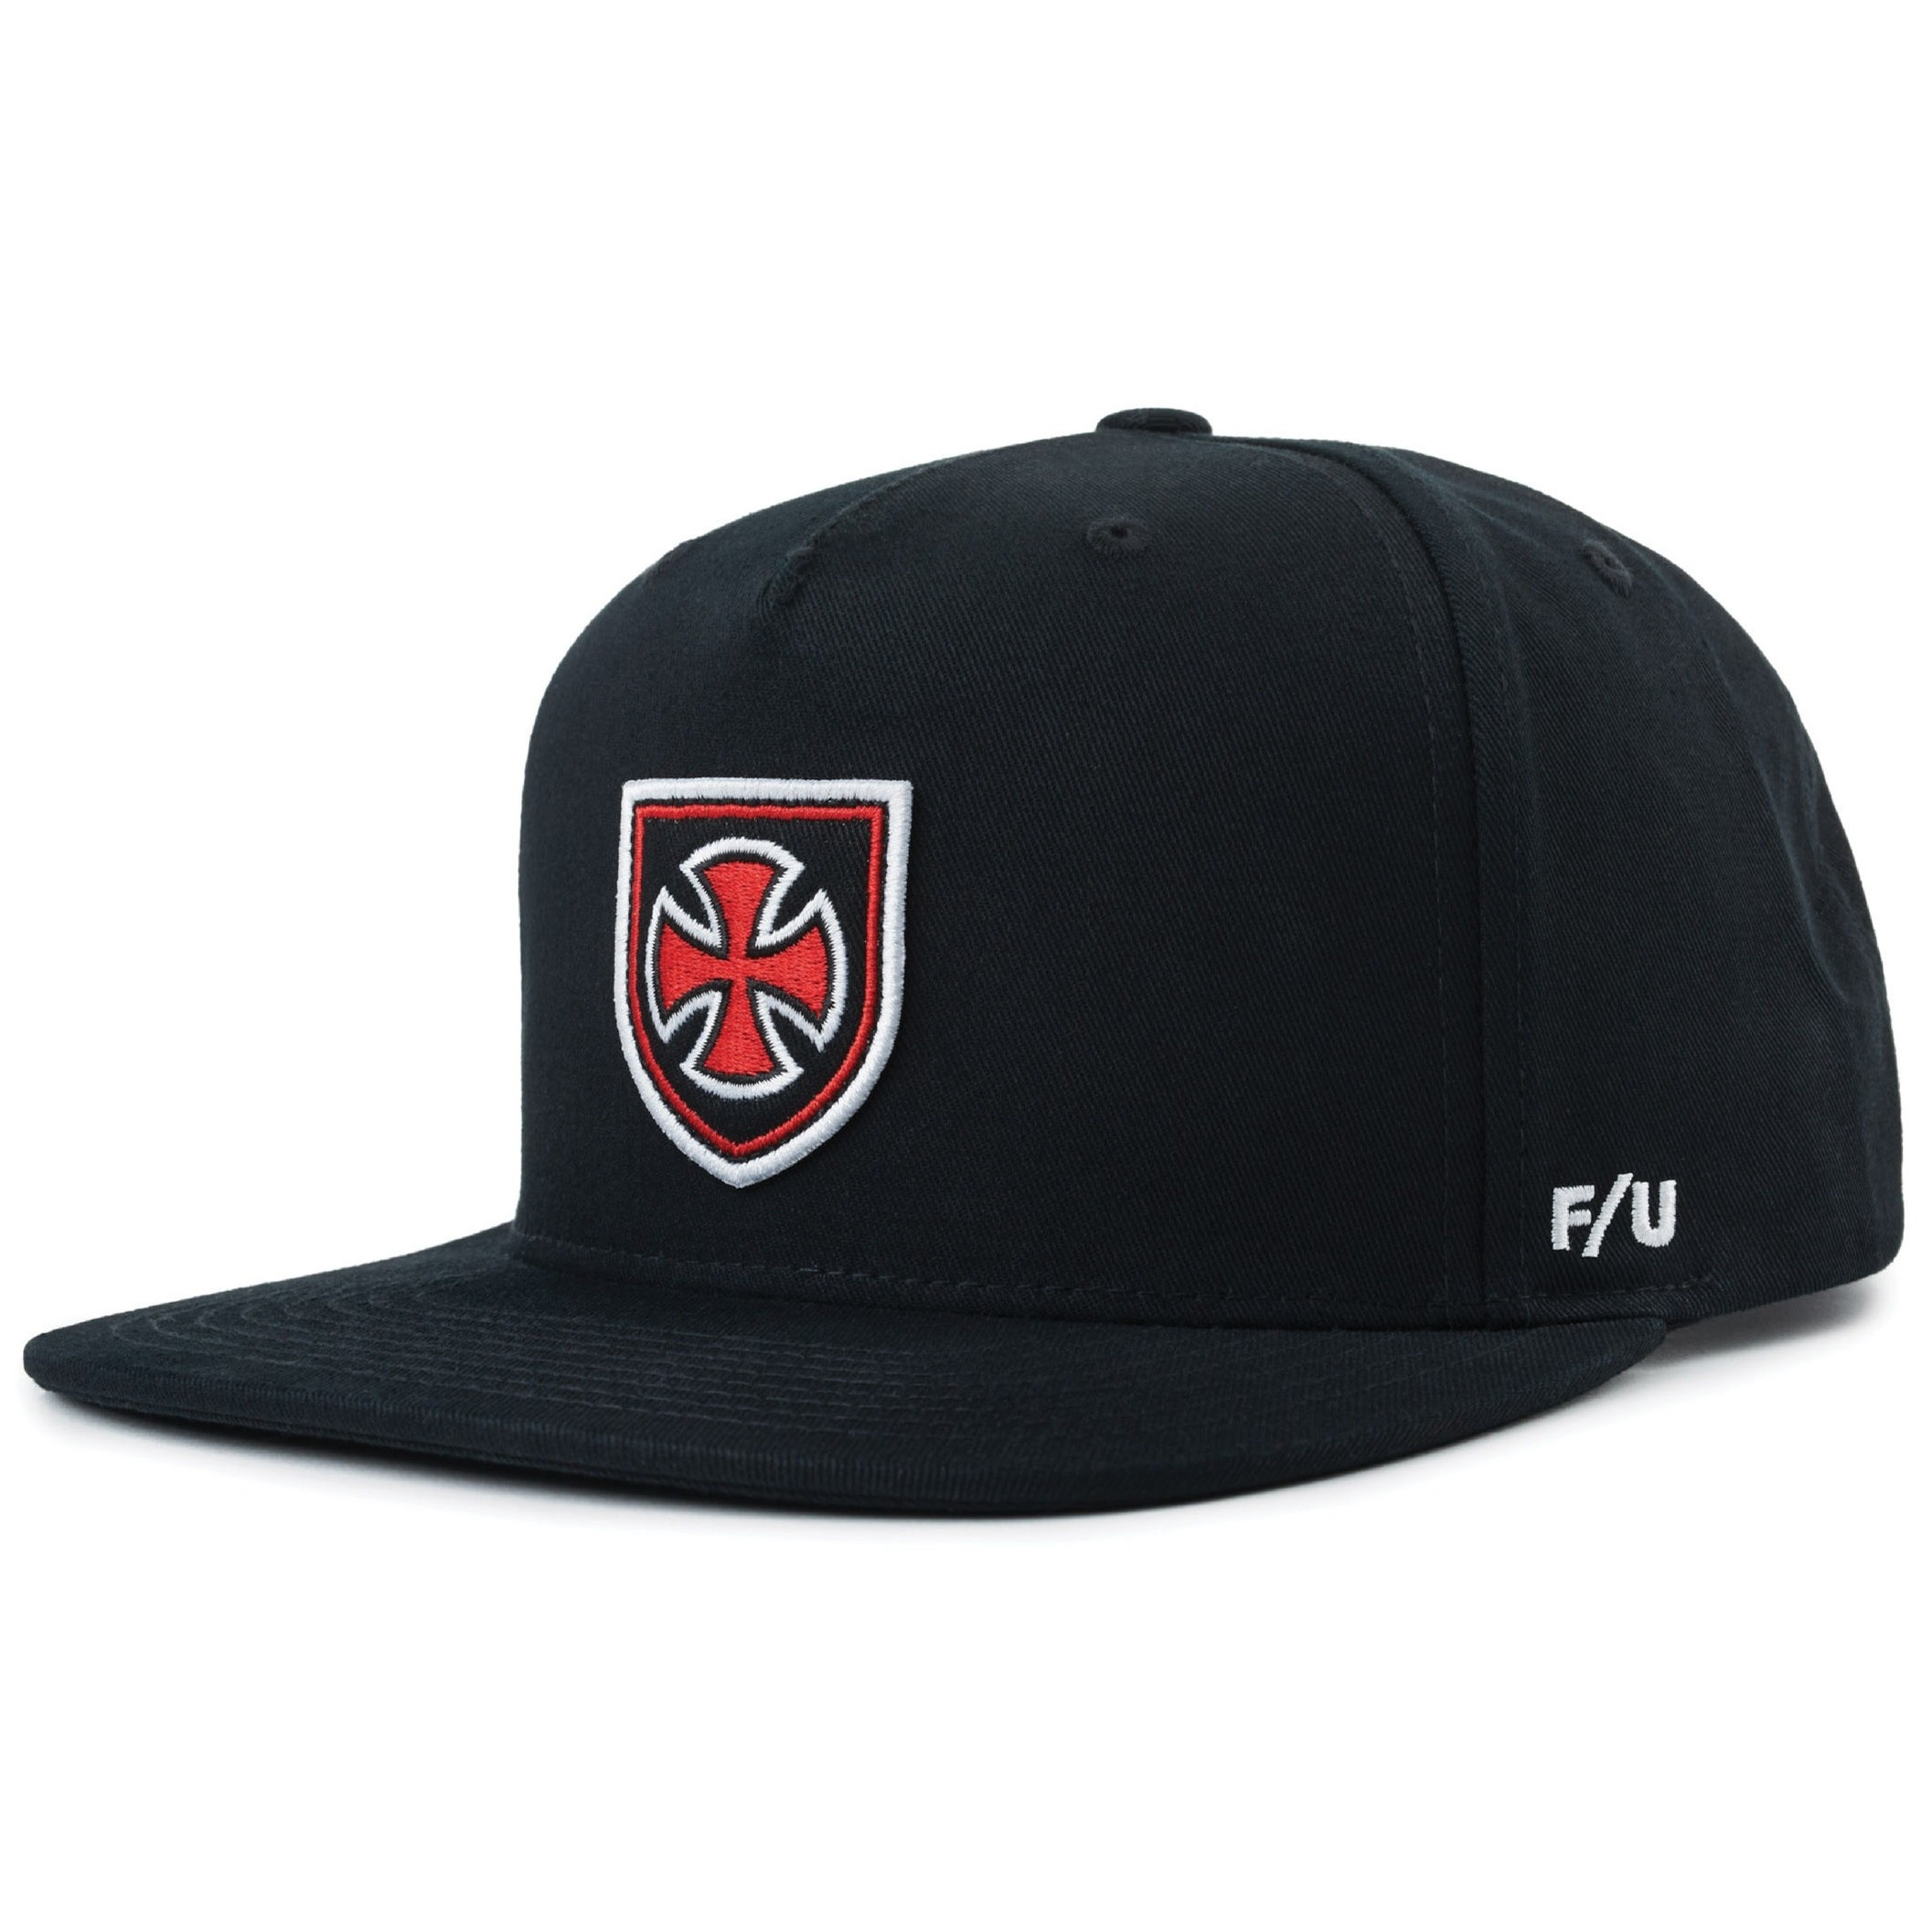 Hedge MP Snapback (Black)